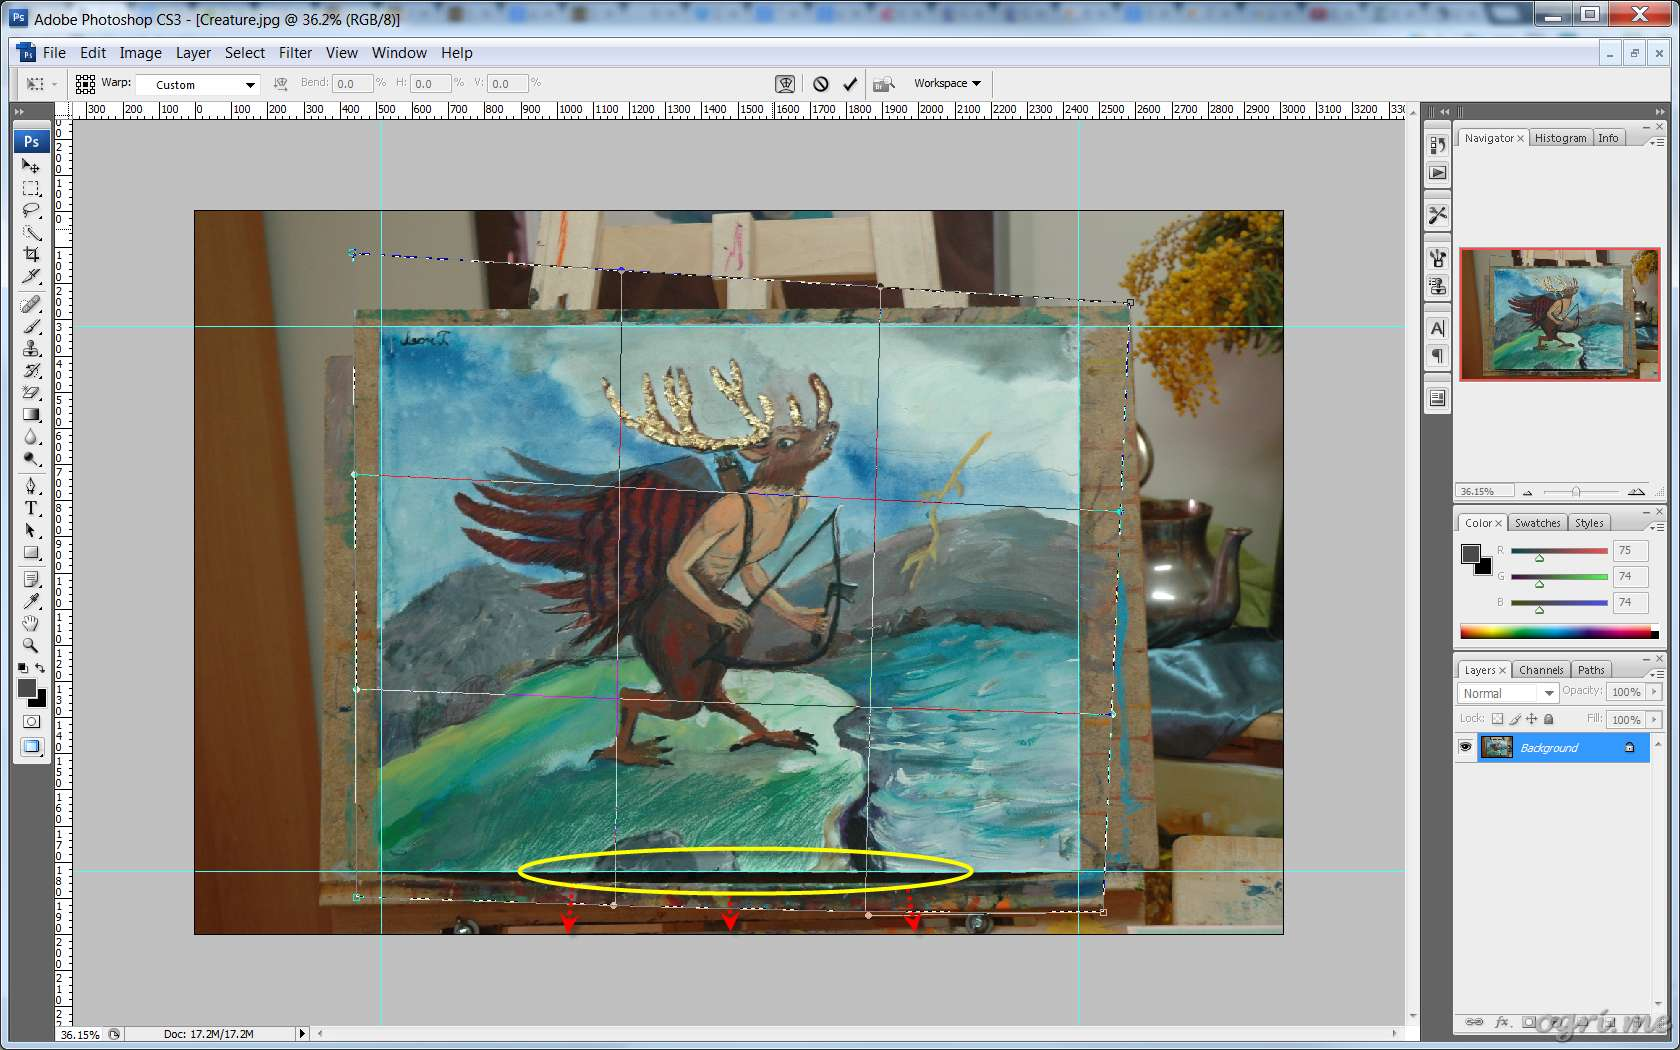 ogri.me | Photoshop: Processing photos of paintings for online gallery #07